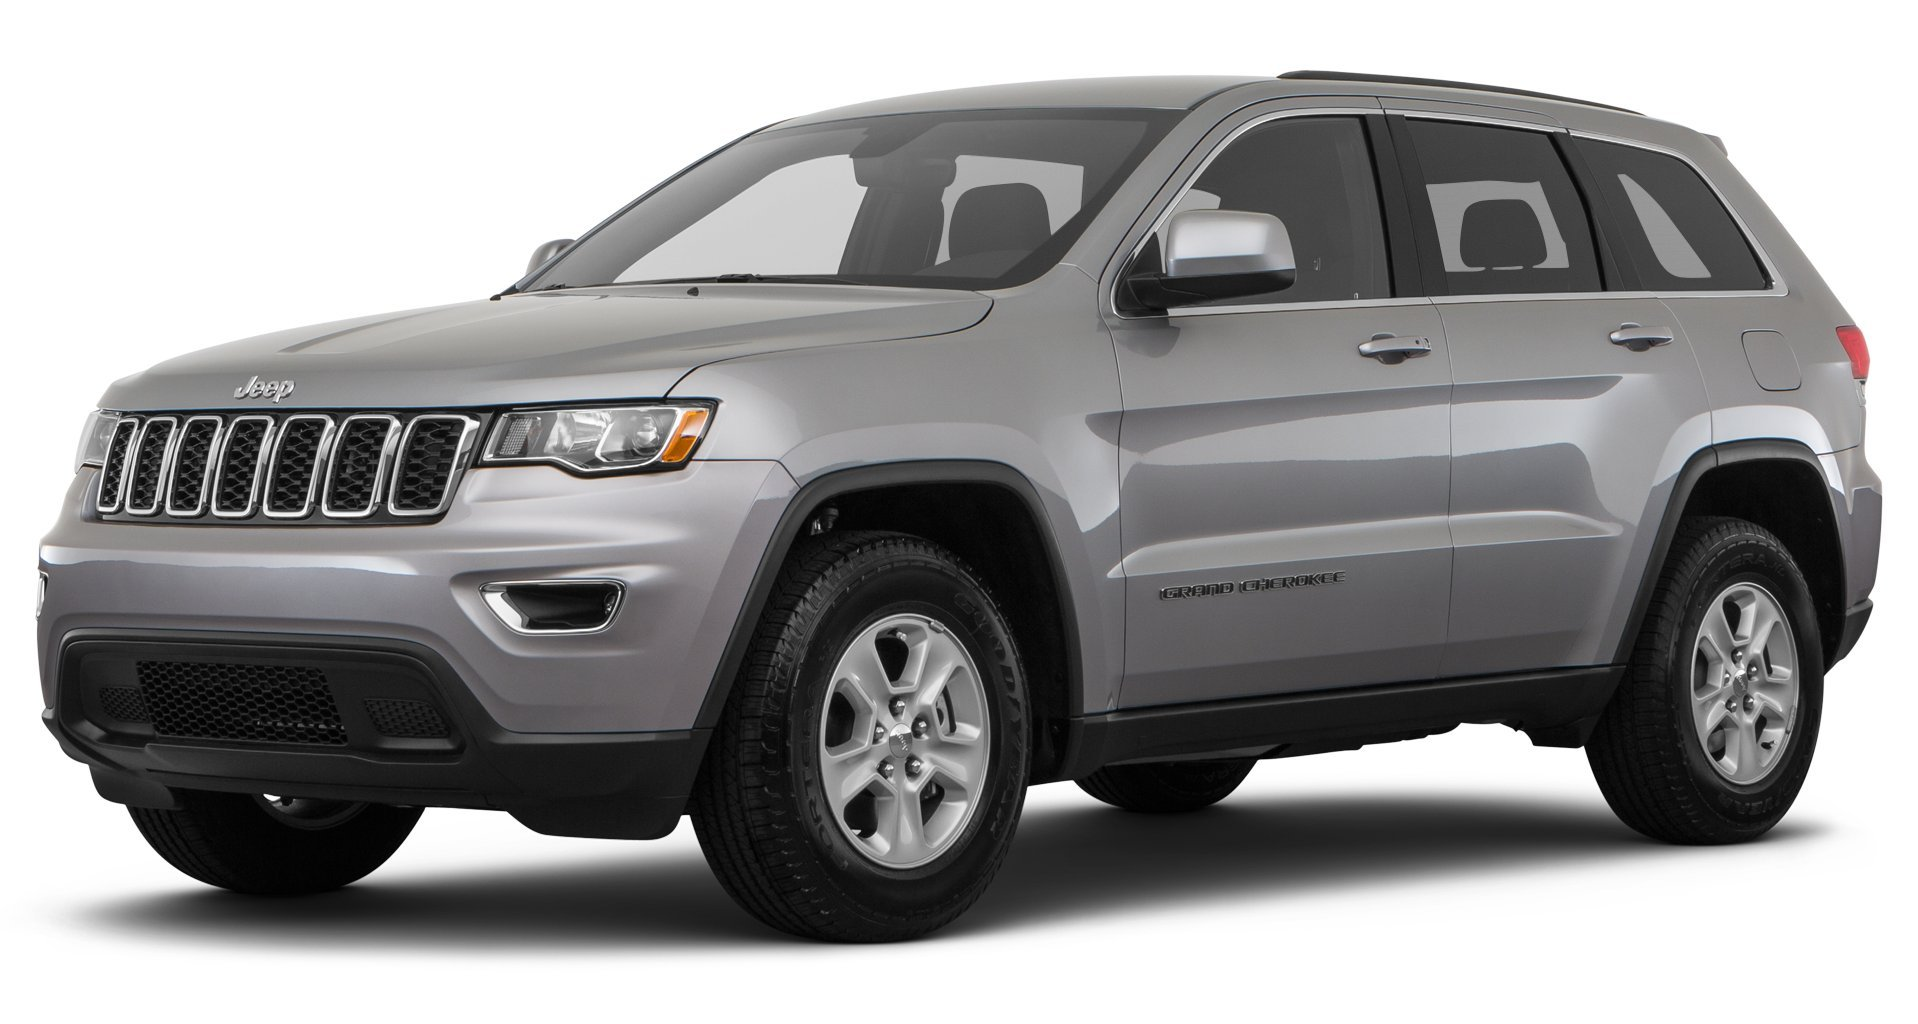 2017 jeep grand cherokee reviews images and specs vehicles. Black Bedroom Furniture Sets. Home Design Ideas